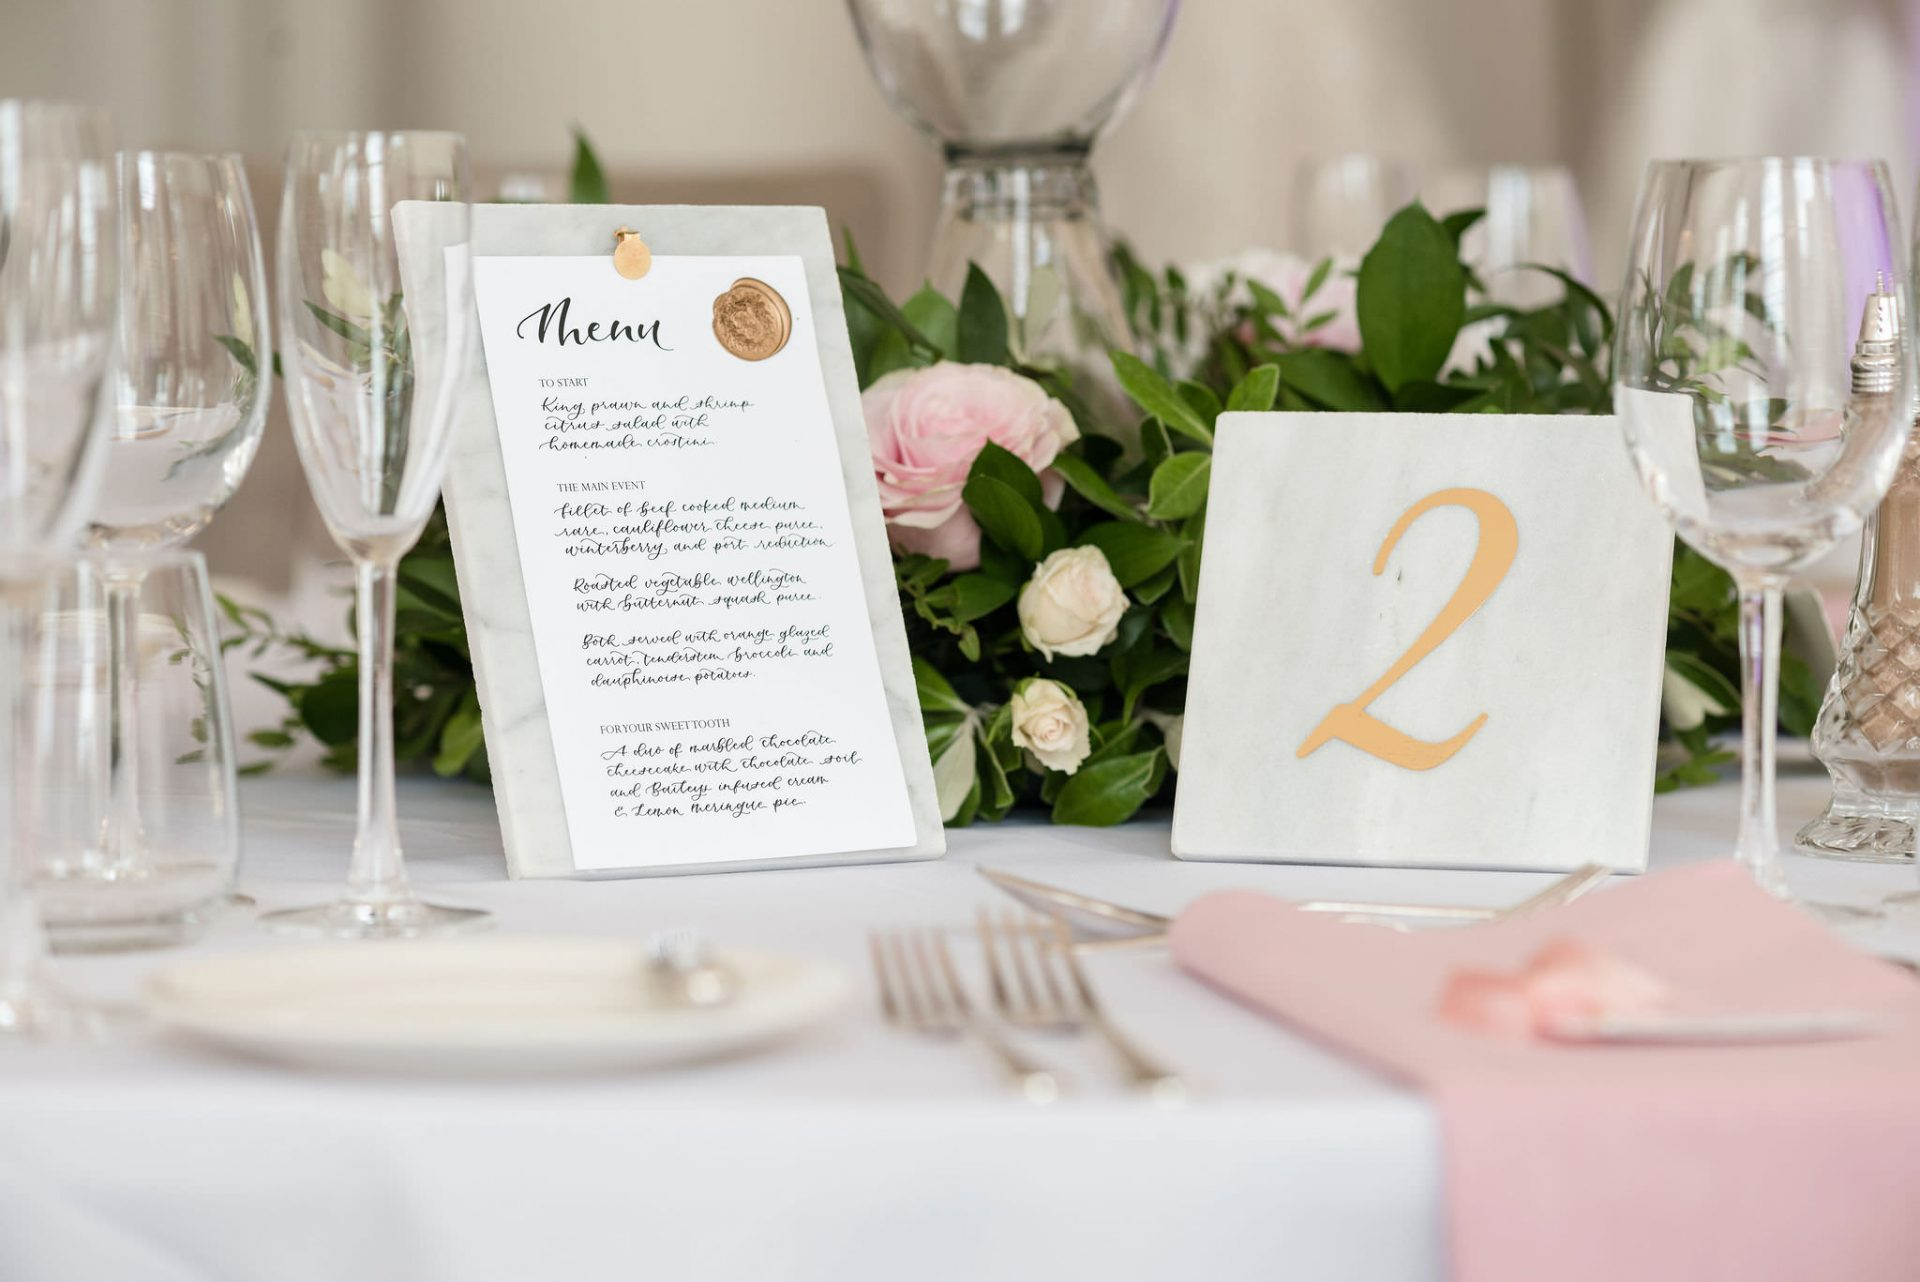 Marble wedding menu with calligraphy and gold details